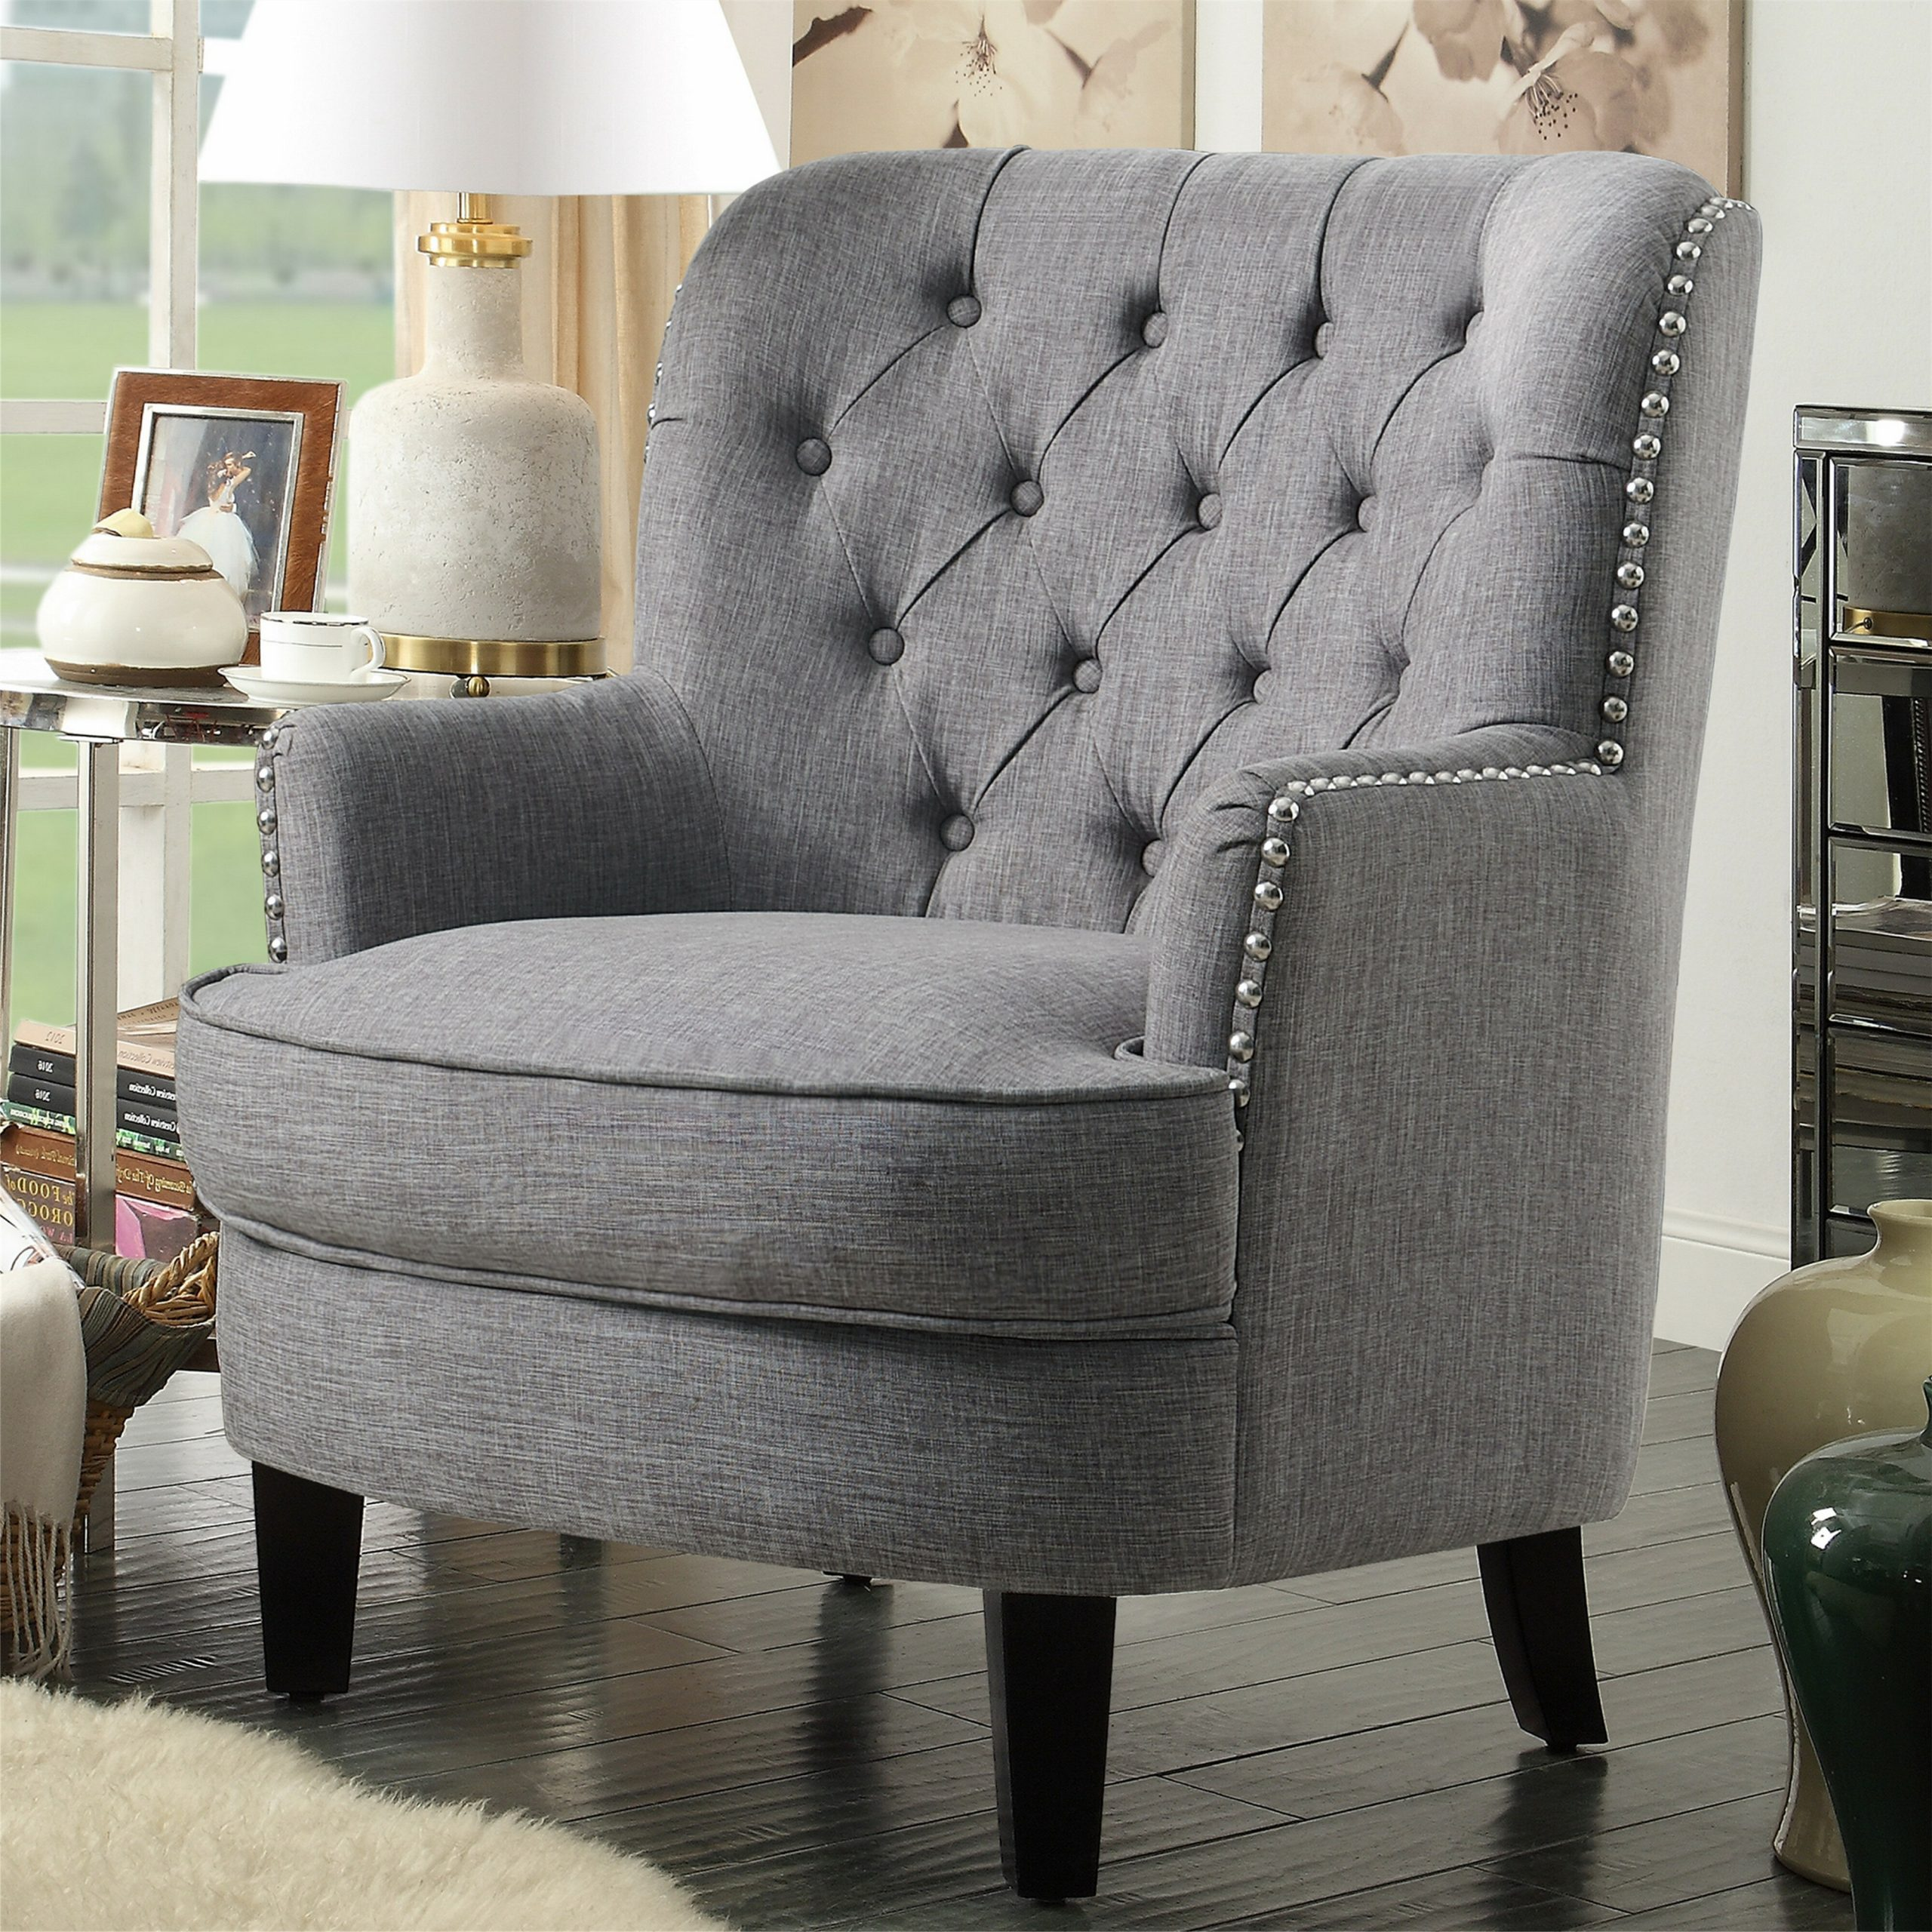 Lenaghan Wingback Chair Intended For Lenaghan Wingback Chairs (View 2 of 15)